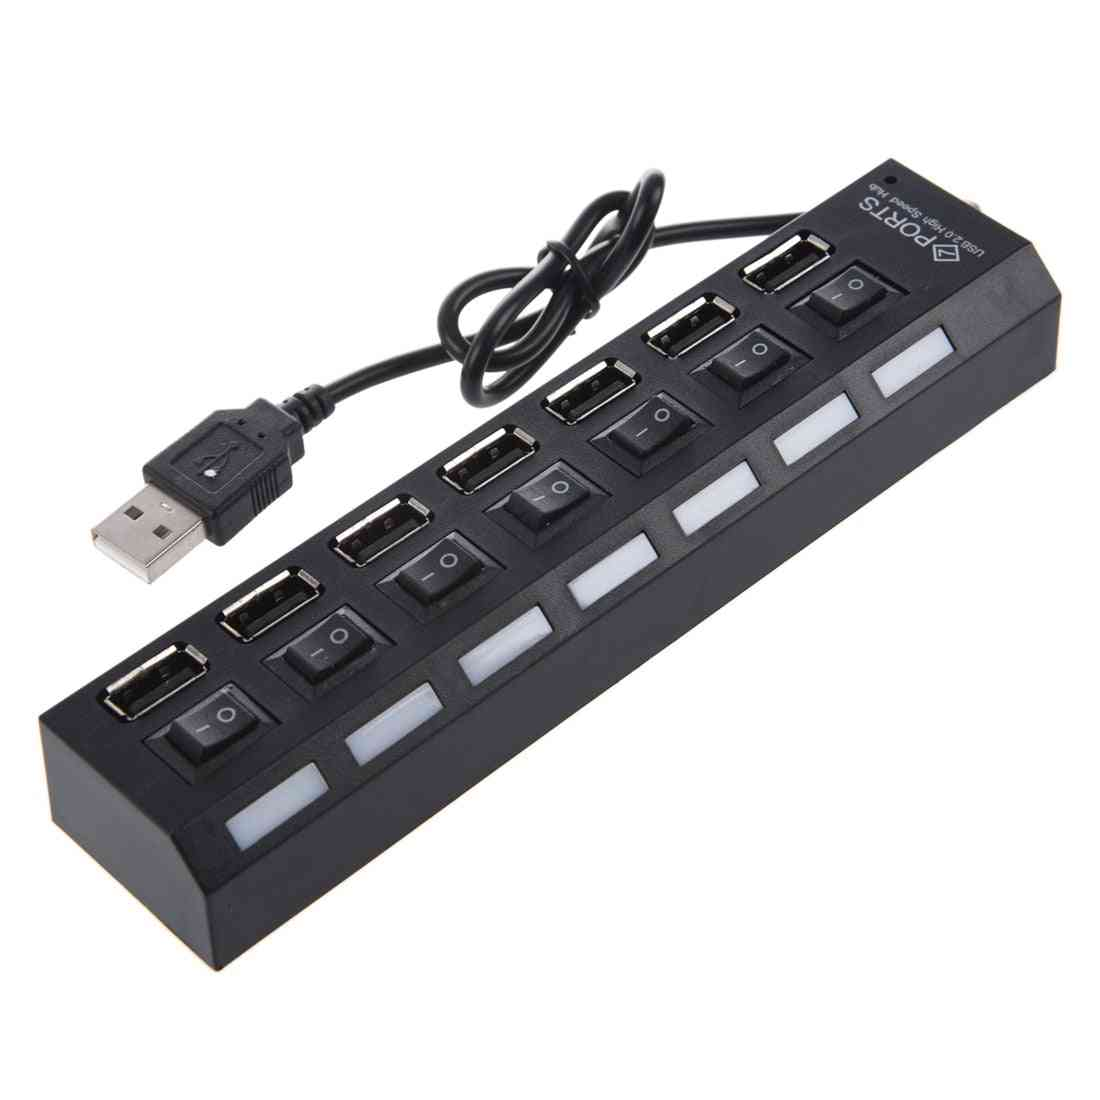 7-port Usb Hub With On / Off Switch